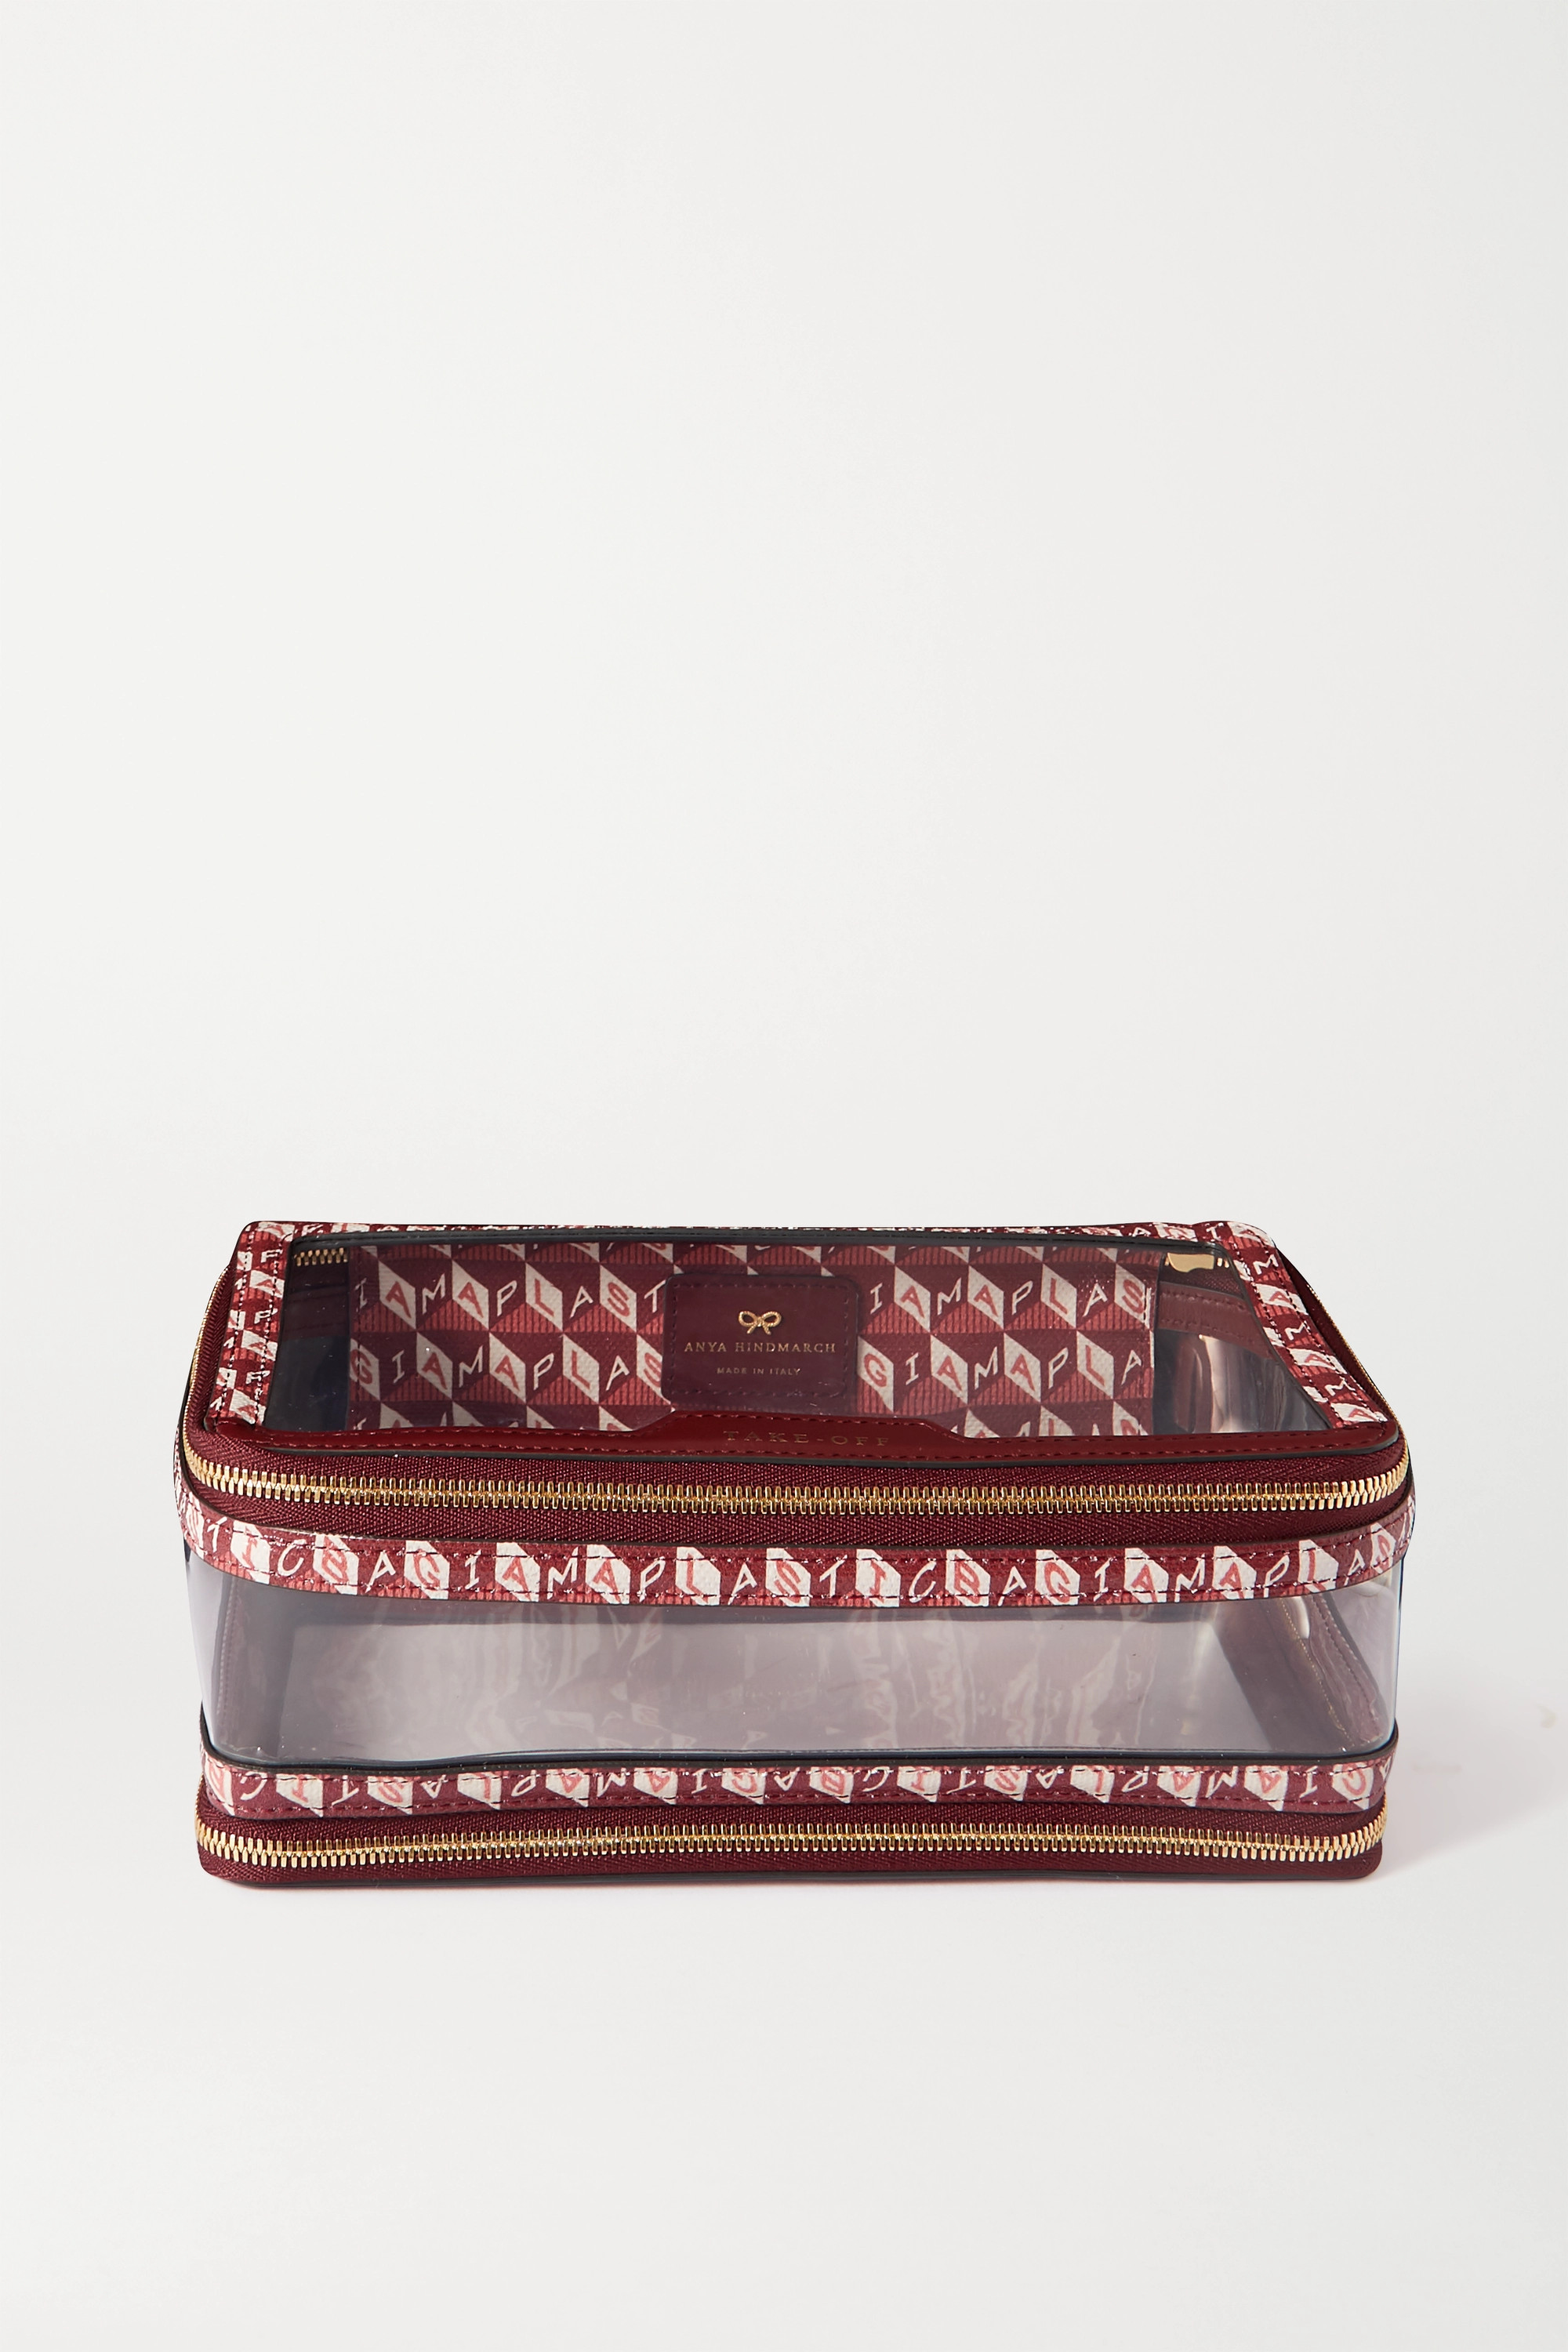 Anya Hindmarch In-Flight leather-trimmed printed coated-canvas and PVC cosmetics case